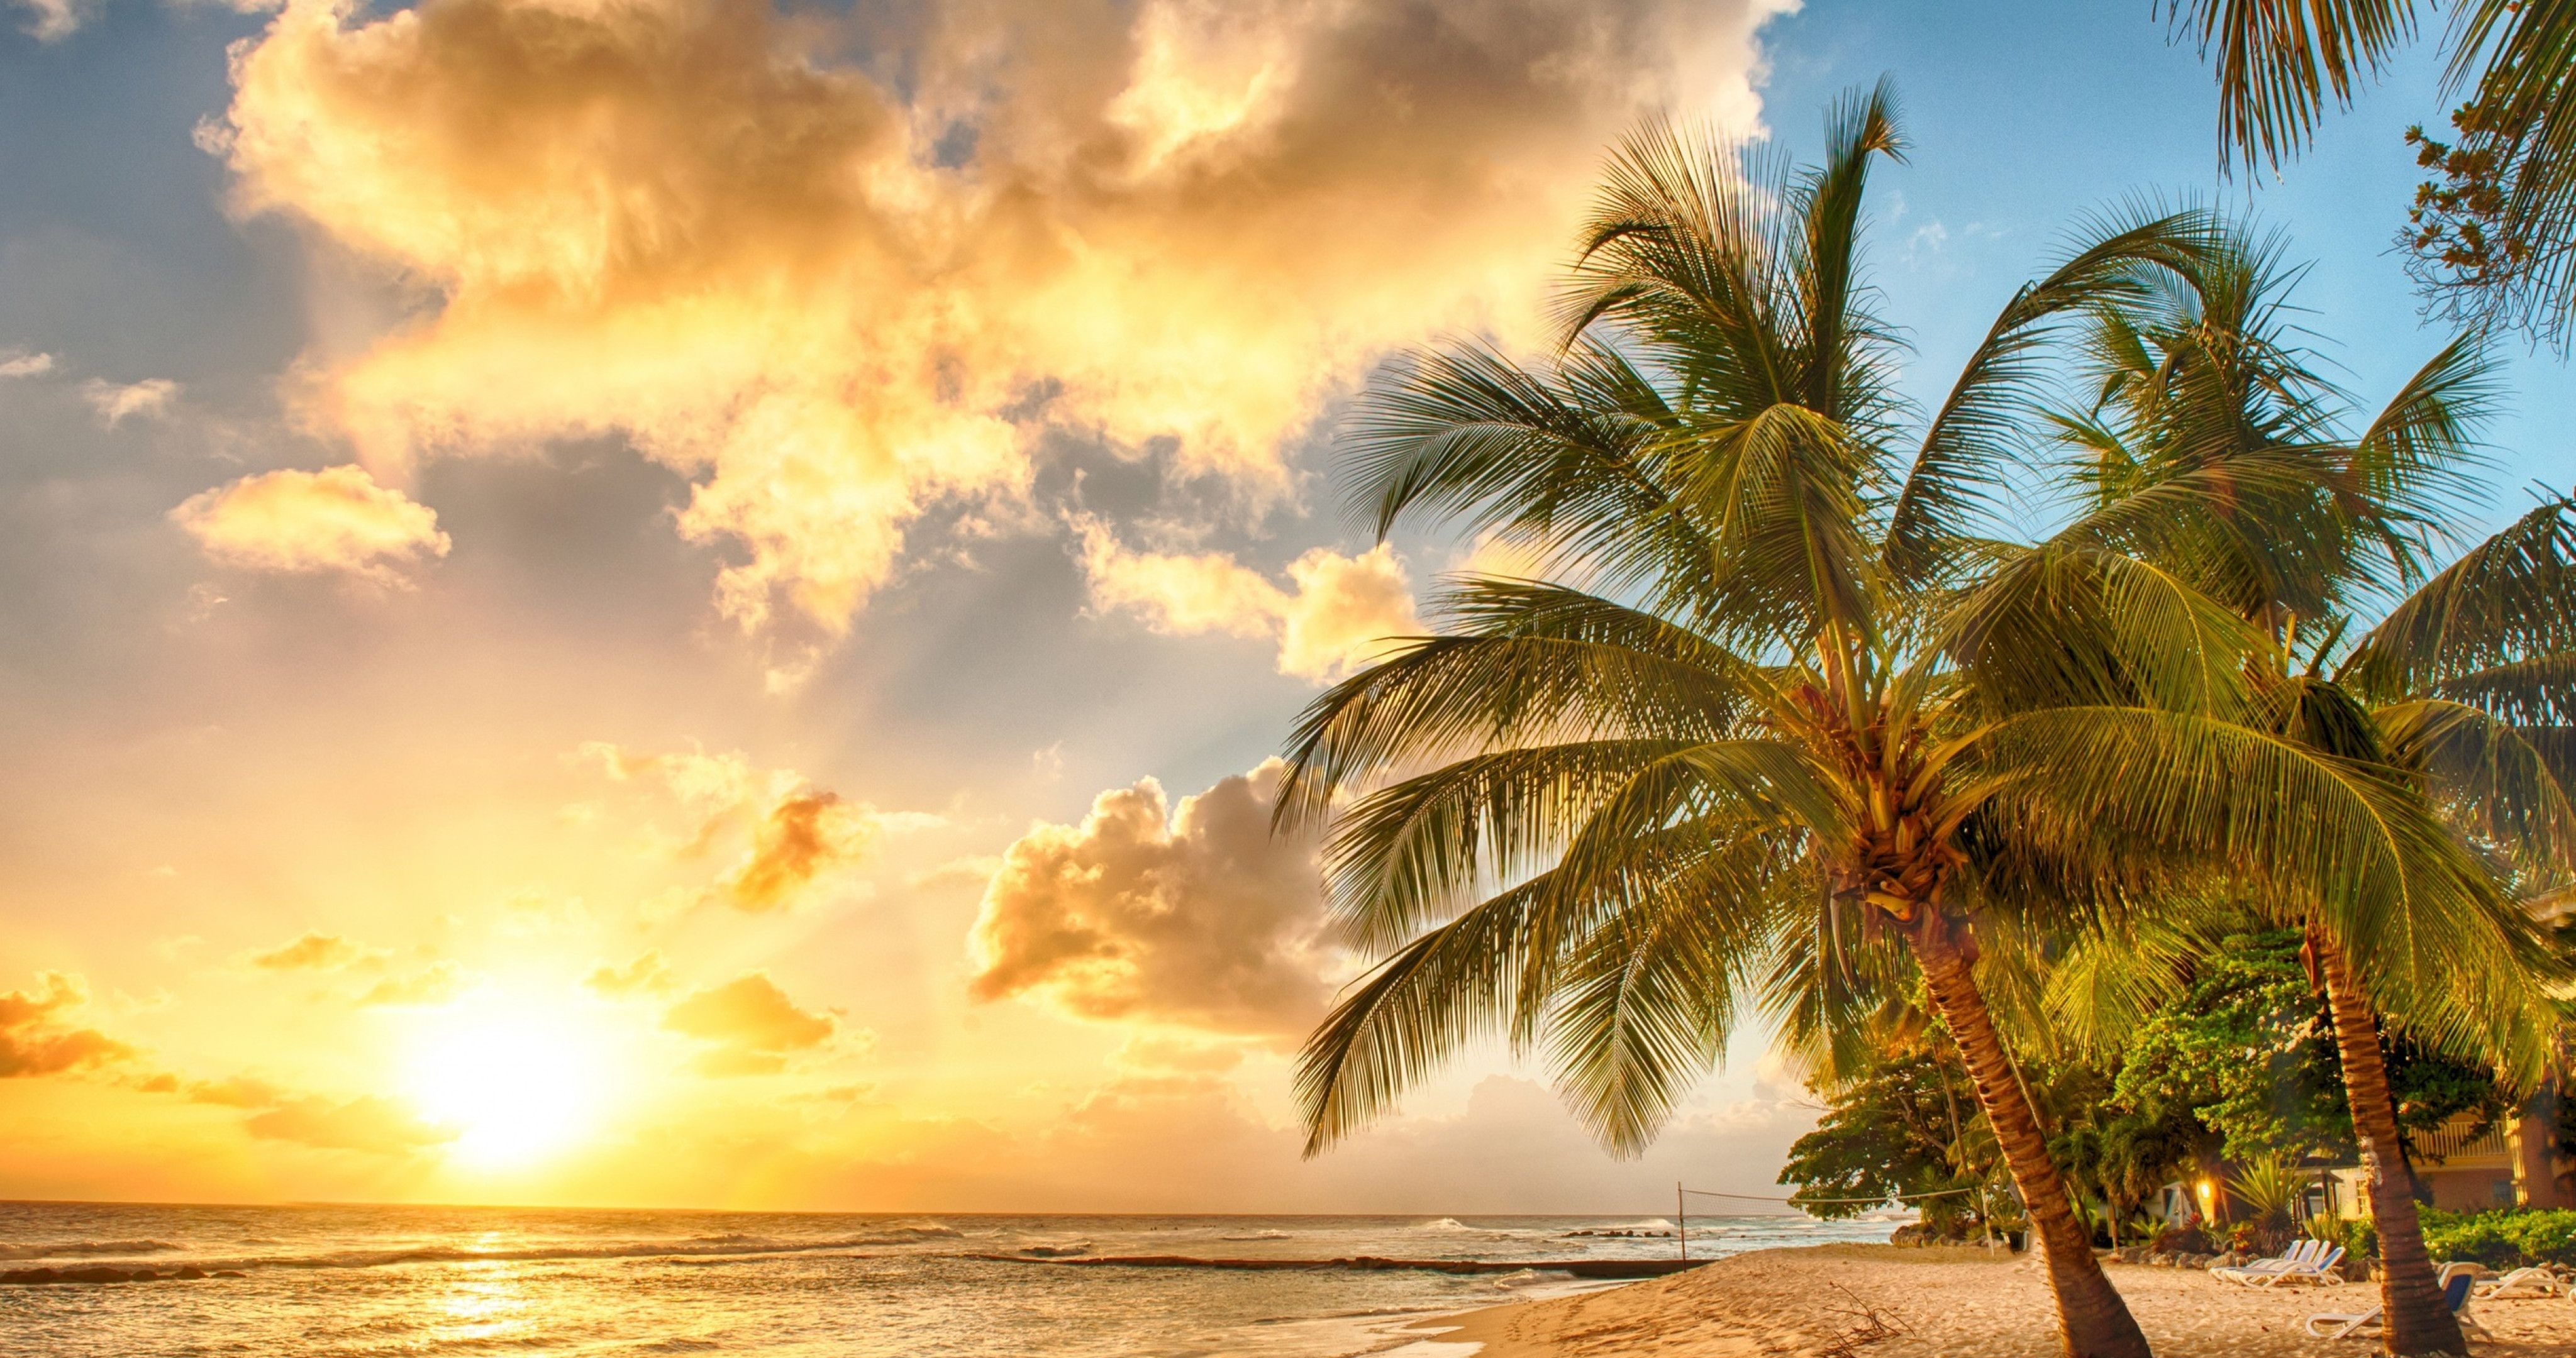 4k Hd Wallapaper 4k Beach Wallpapers High Quality Sunrise Wallpaper Sunset Wallpaper Tropical Beach Vacations